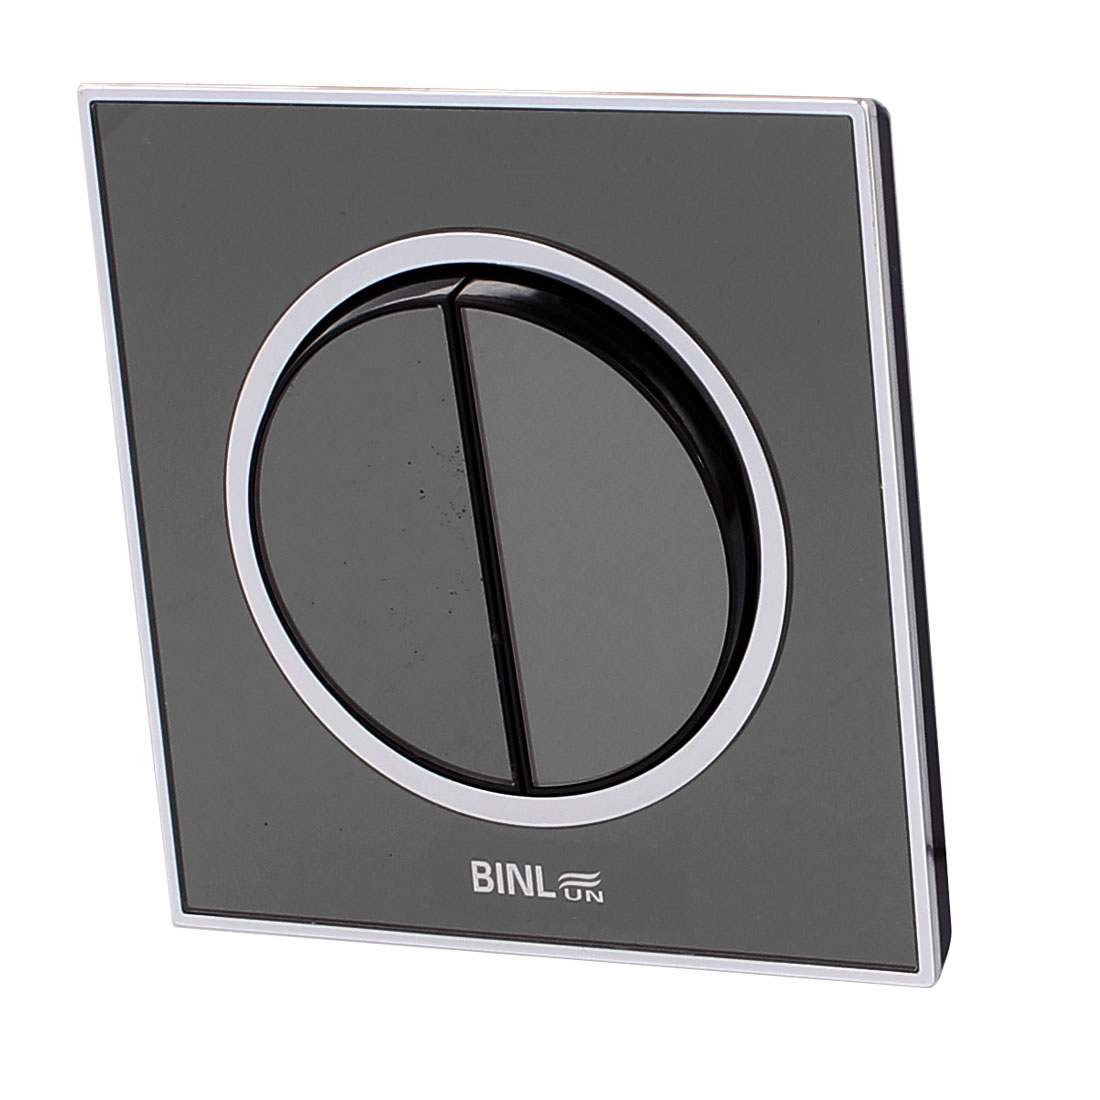 86 x 86mm AC 220V 10A Wall Mounted Dual Button Dual Control Switch Black 86 Type